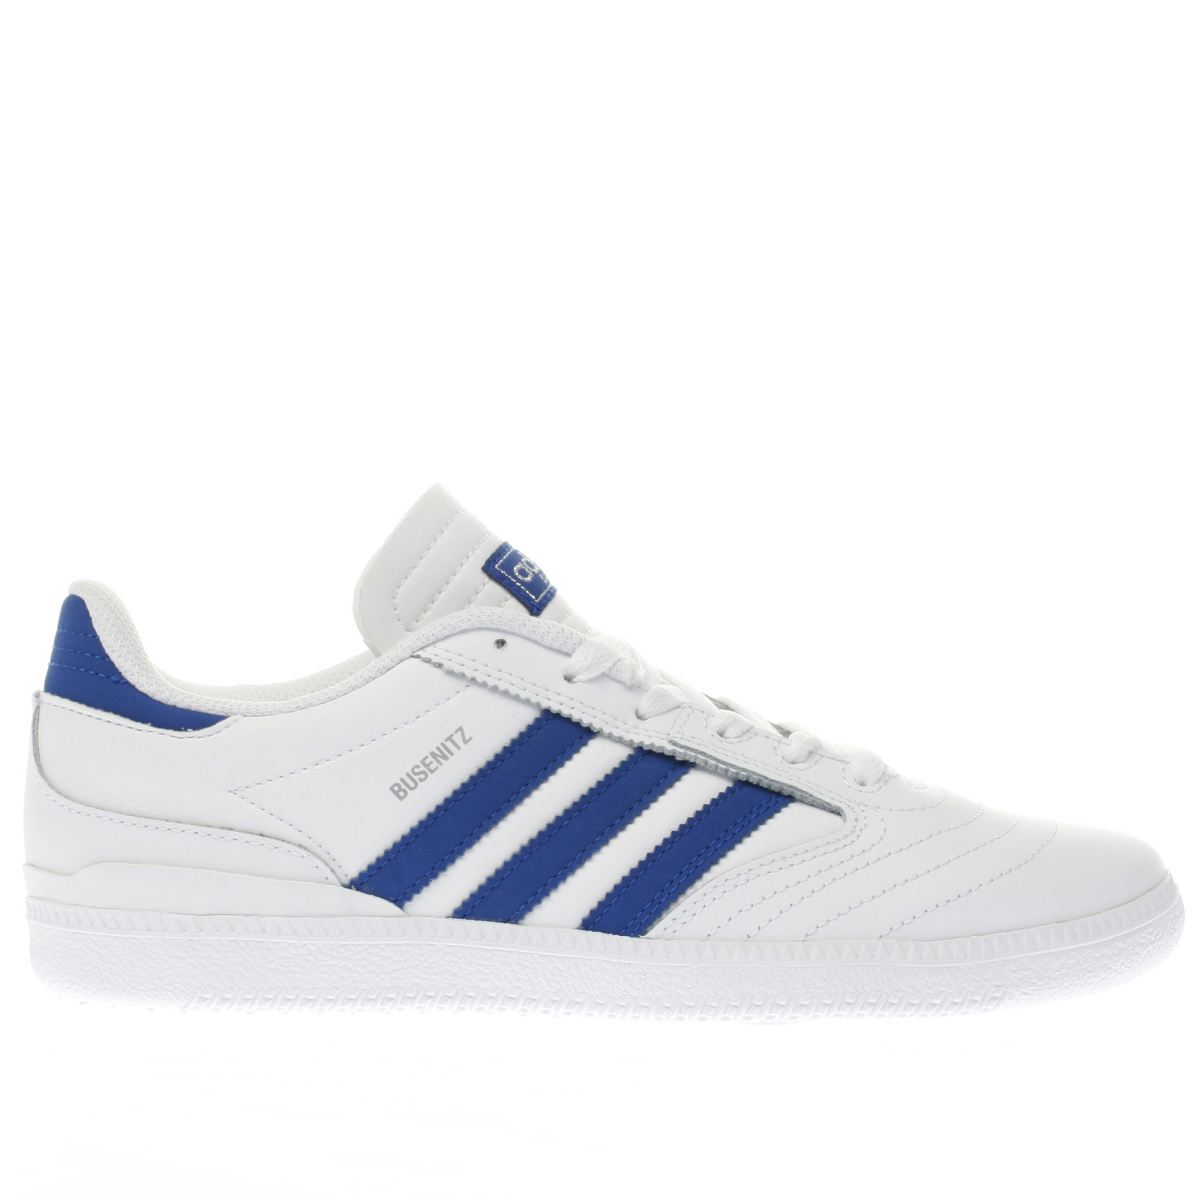 adidas white & navy busenitz Boys Youth Trainers